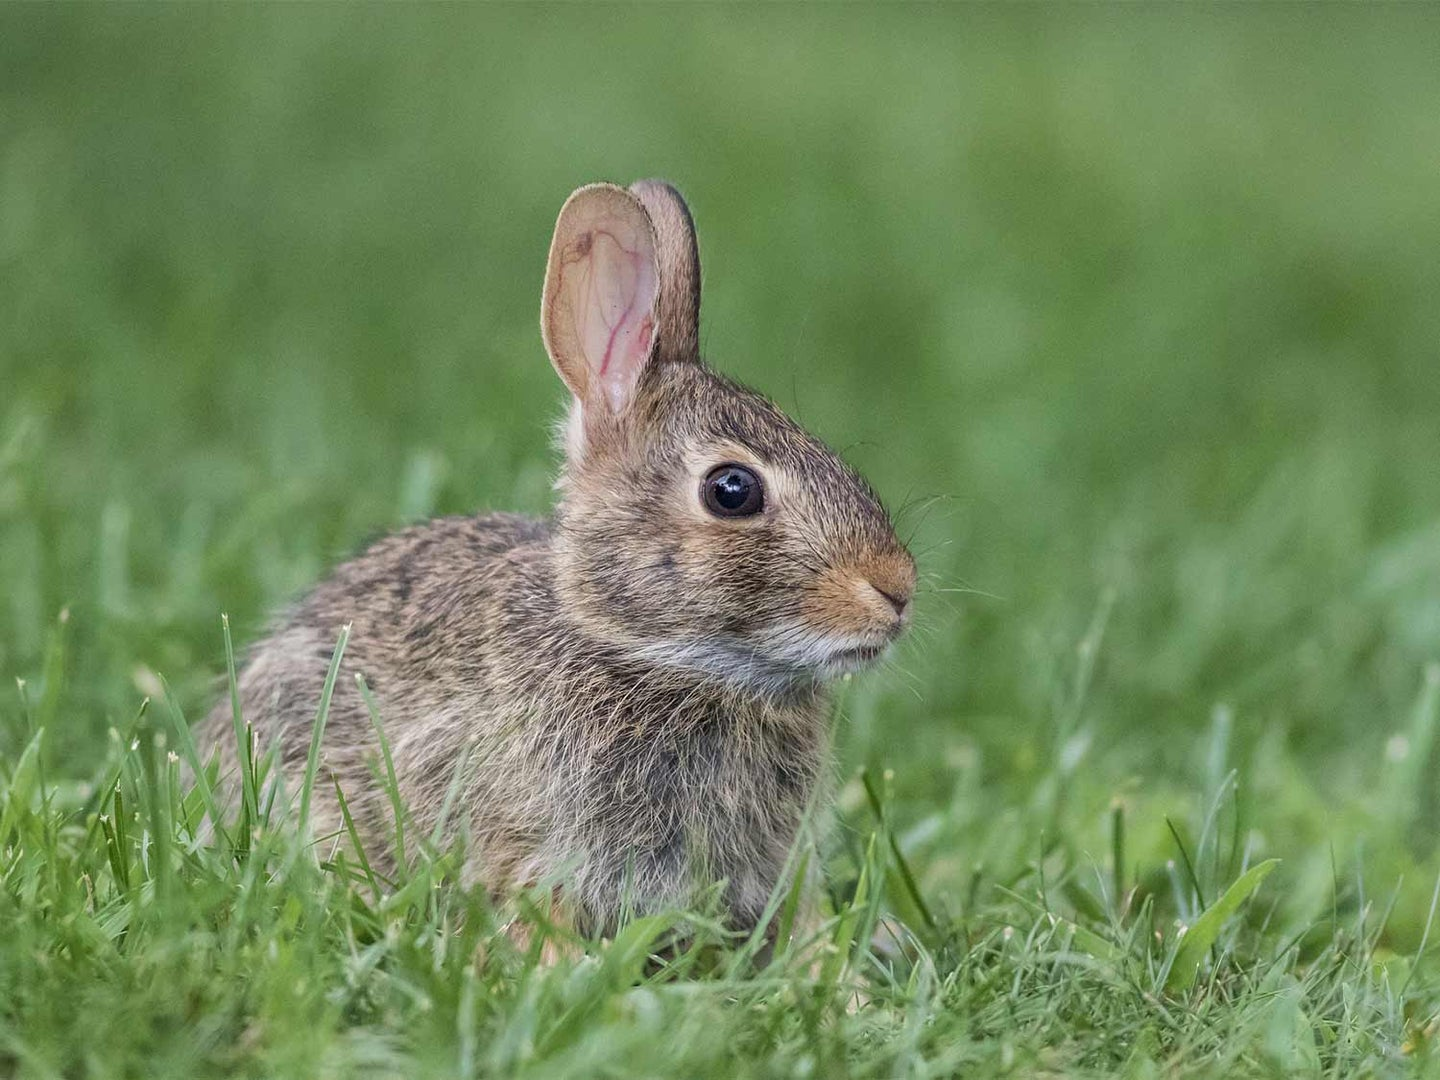 A small rabbit in the tall grass.